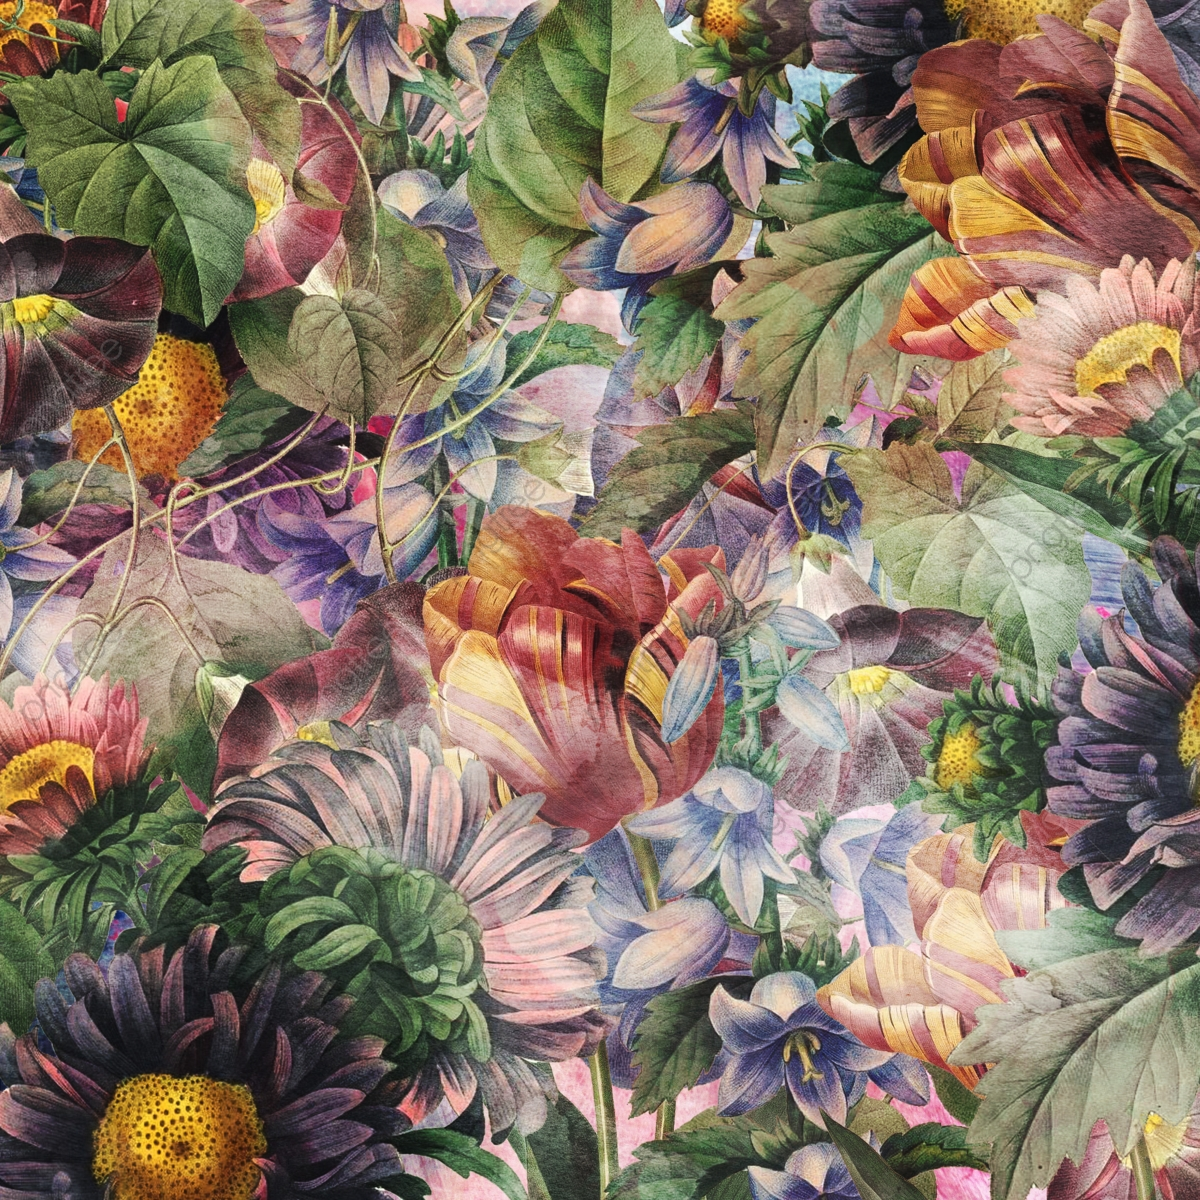 Vintage Botanical Garden Background, Nature, Abstract